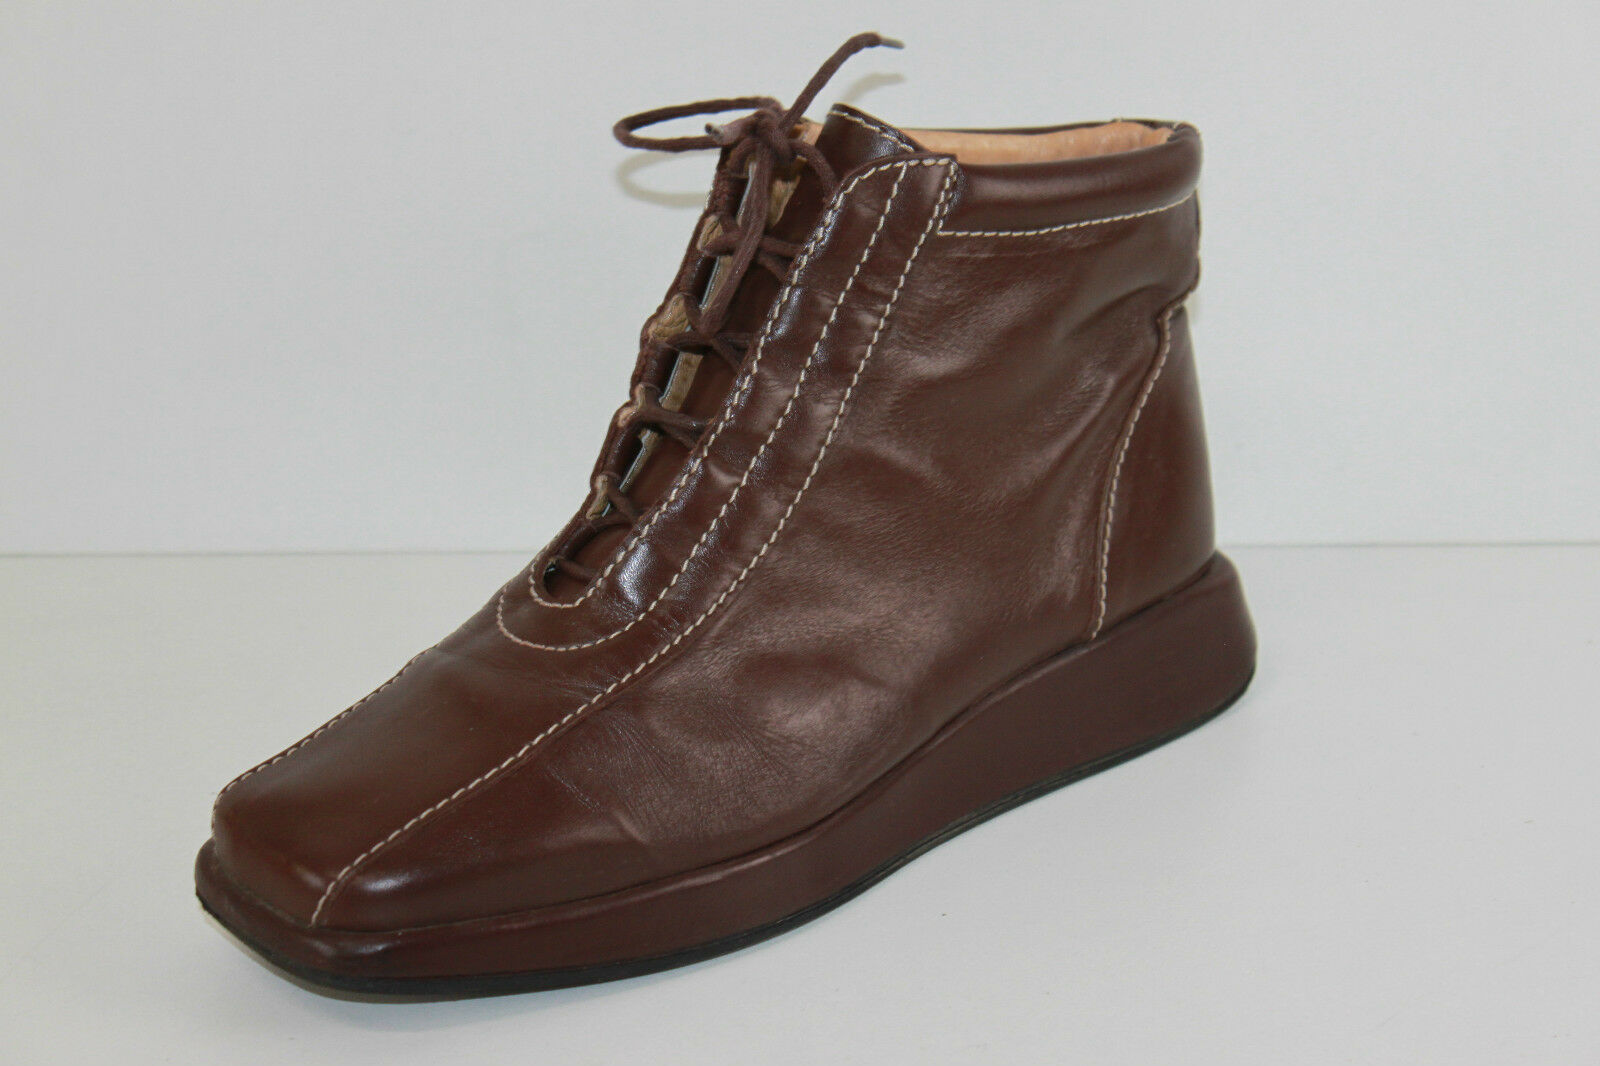 Bottines Boots LA SCARPA Cuir Souple brown T 39 TBE